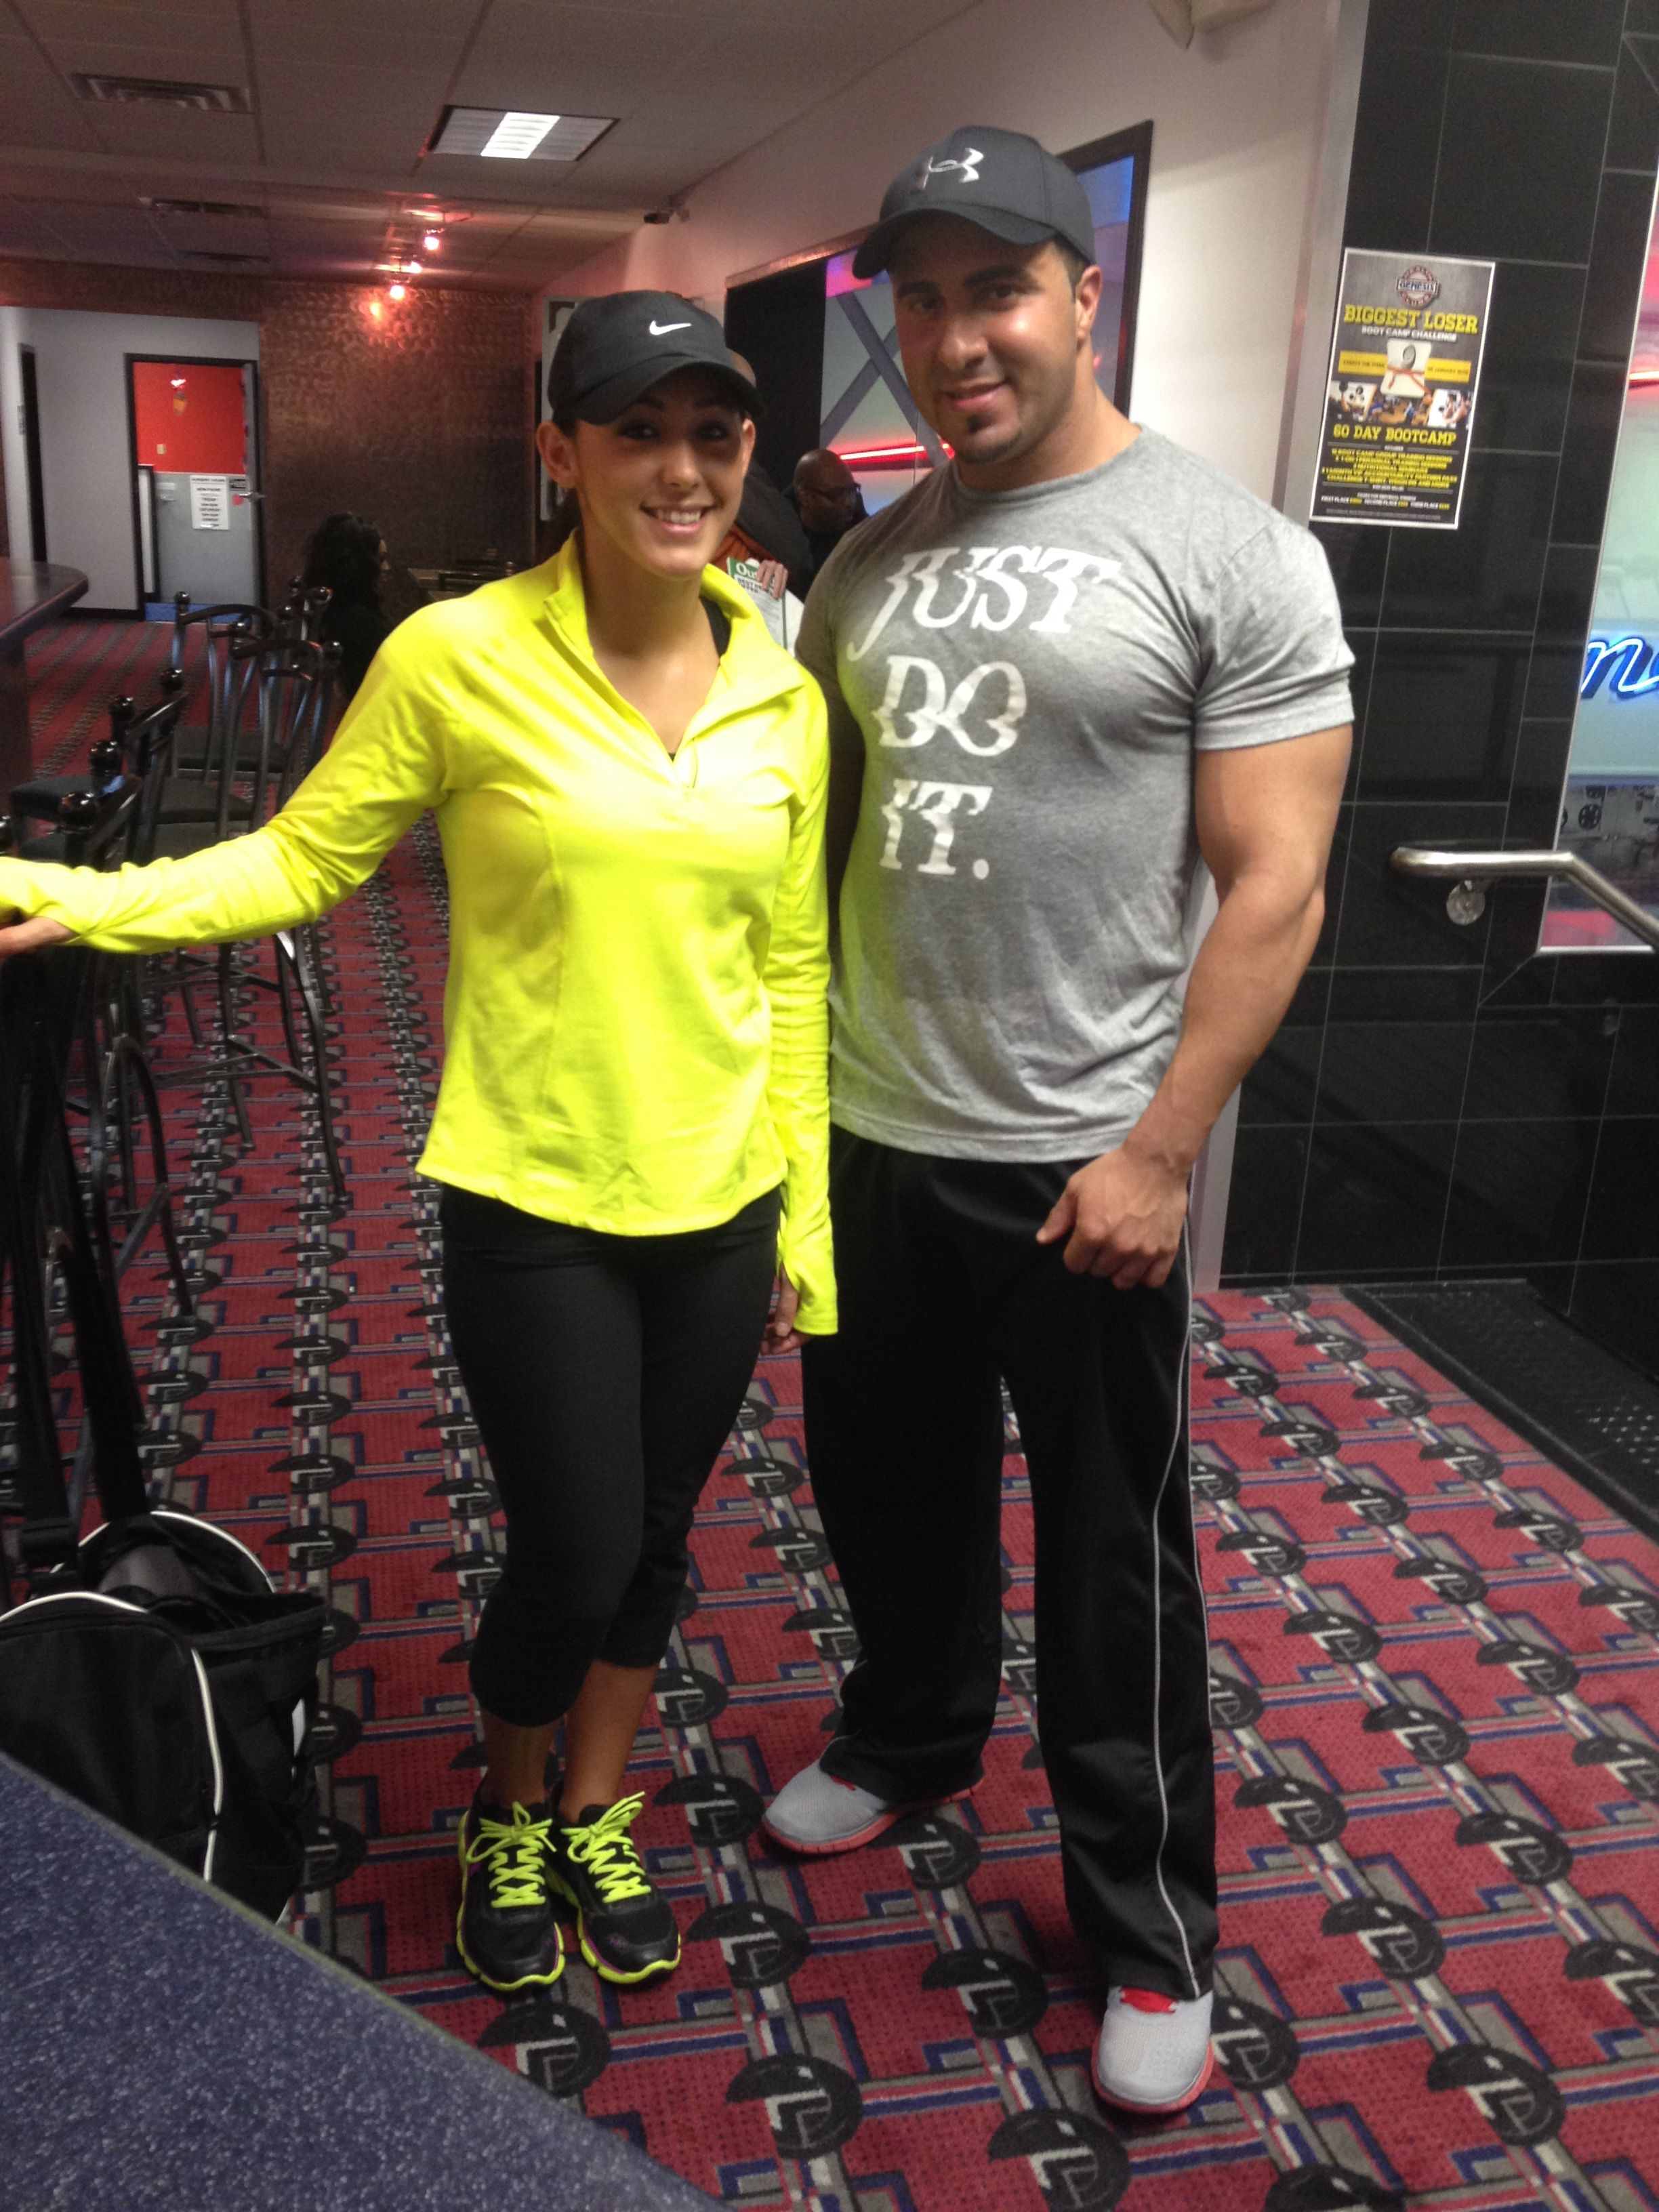 We Love Genesis Because We Love The Environment And The Friendly People Anthony Brittany E East Central Whyilovegenesis Style Health Club People